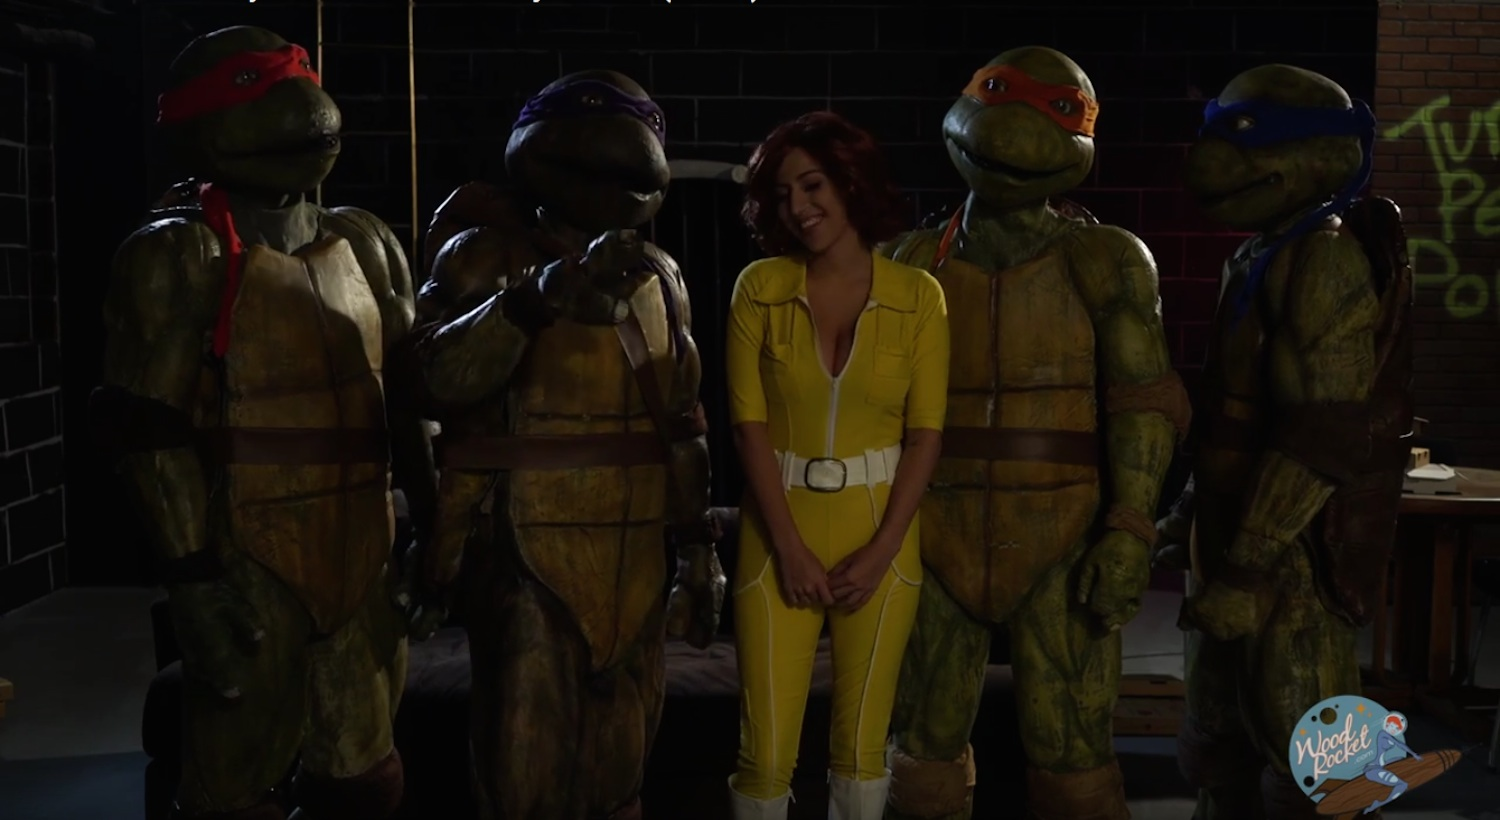 ten inch mutant ninja turtles - the xxx parody